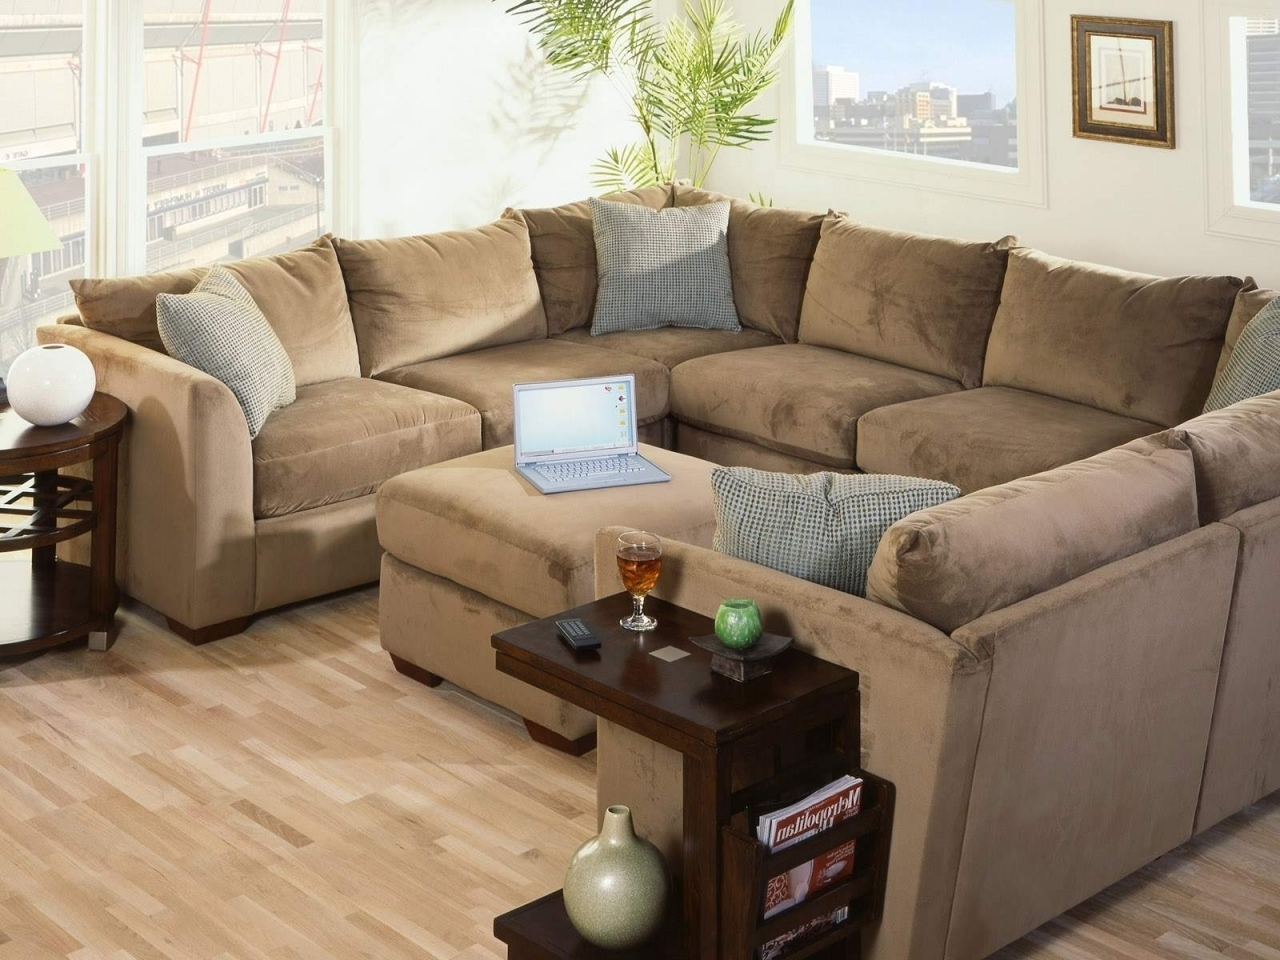 Best And Newest Amazing Sectional Couches Big Lots 77 On Contemporary Sofa With Big Lots Sofas (View 4 of 20)